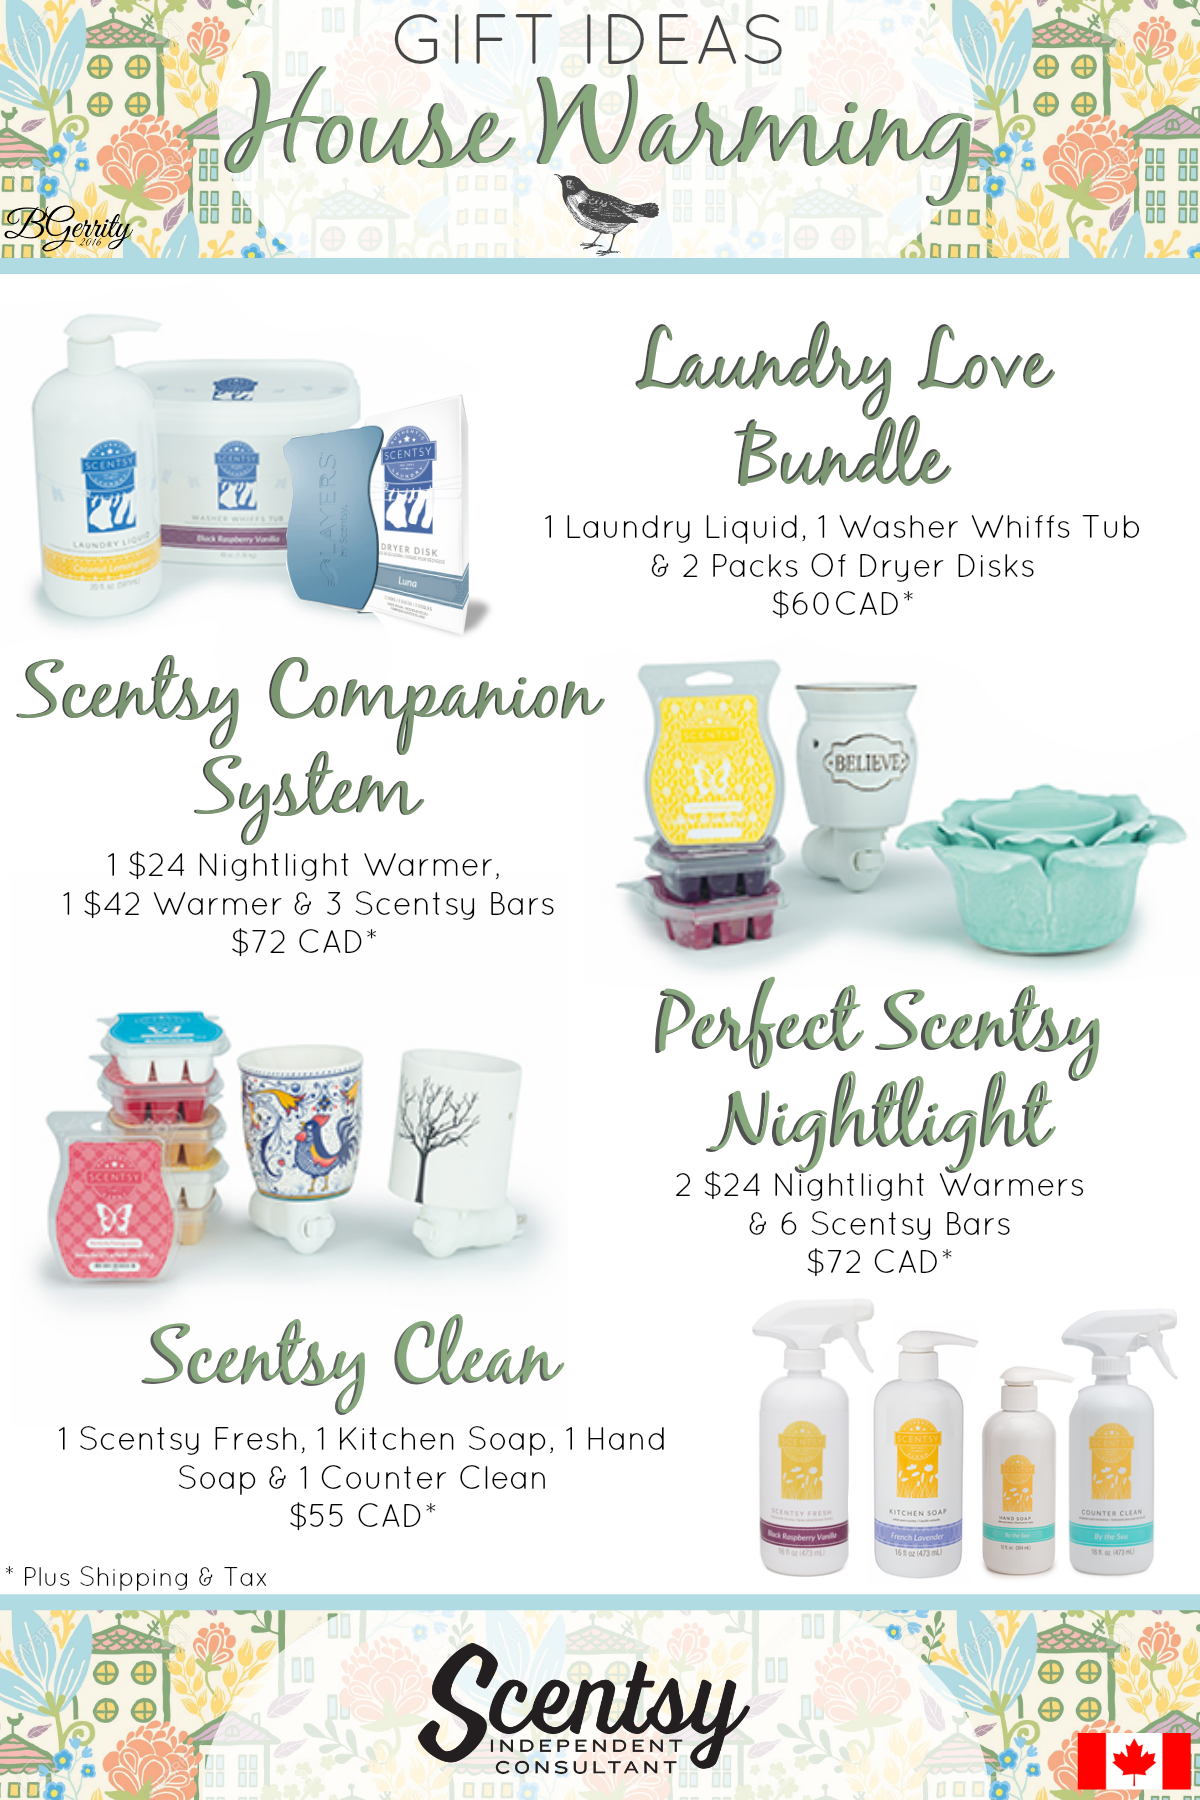 Scentsy Hose Warming Gift Ideas Canadian Flyer Created By Brittany Gerrity Www Brittanygerrity Scentsy C Scentsy Scentsy Consultant Ideas Scentsy Fragrance